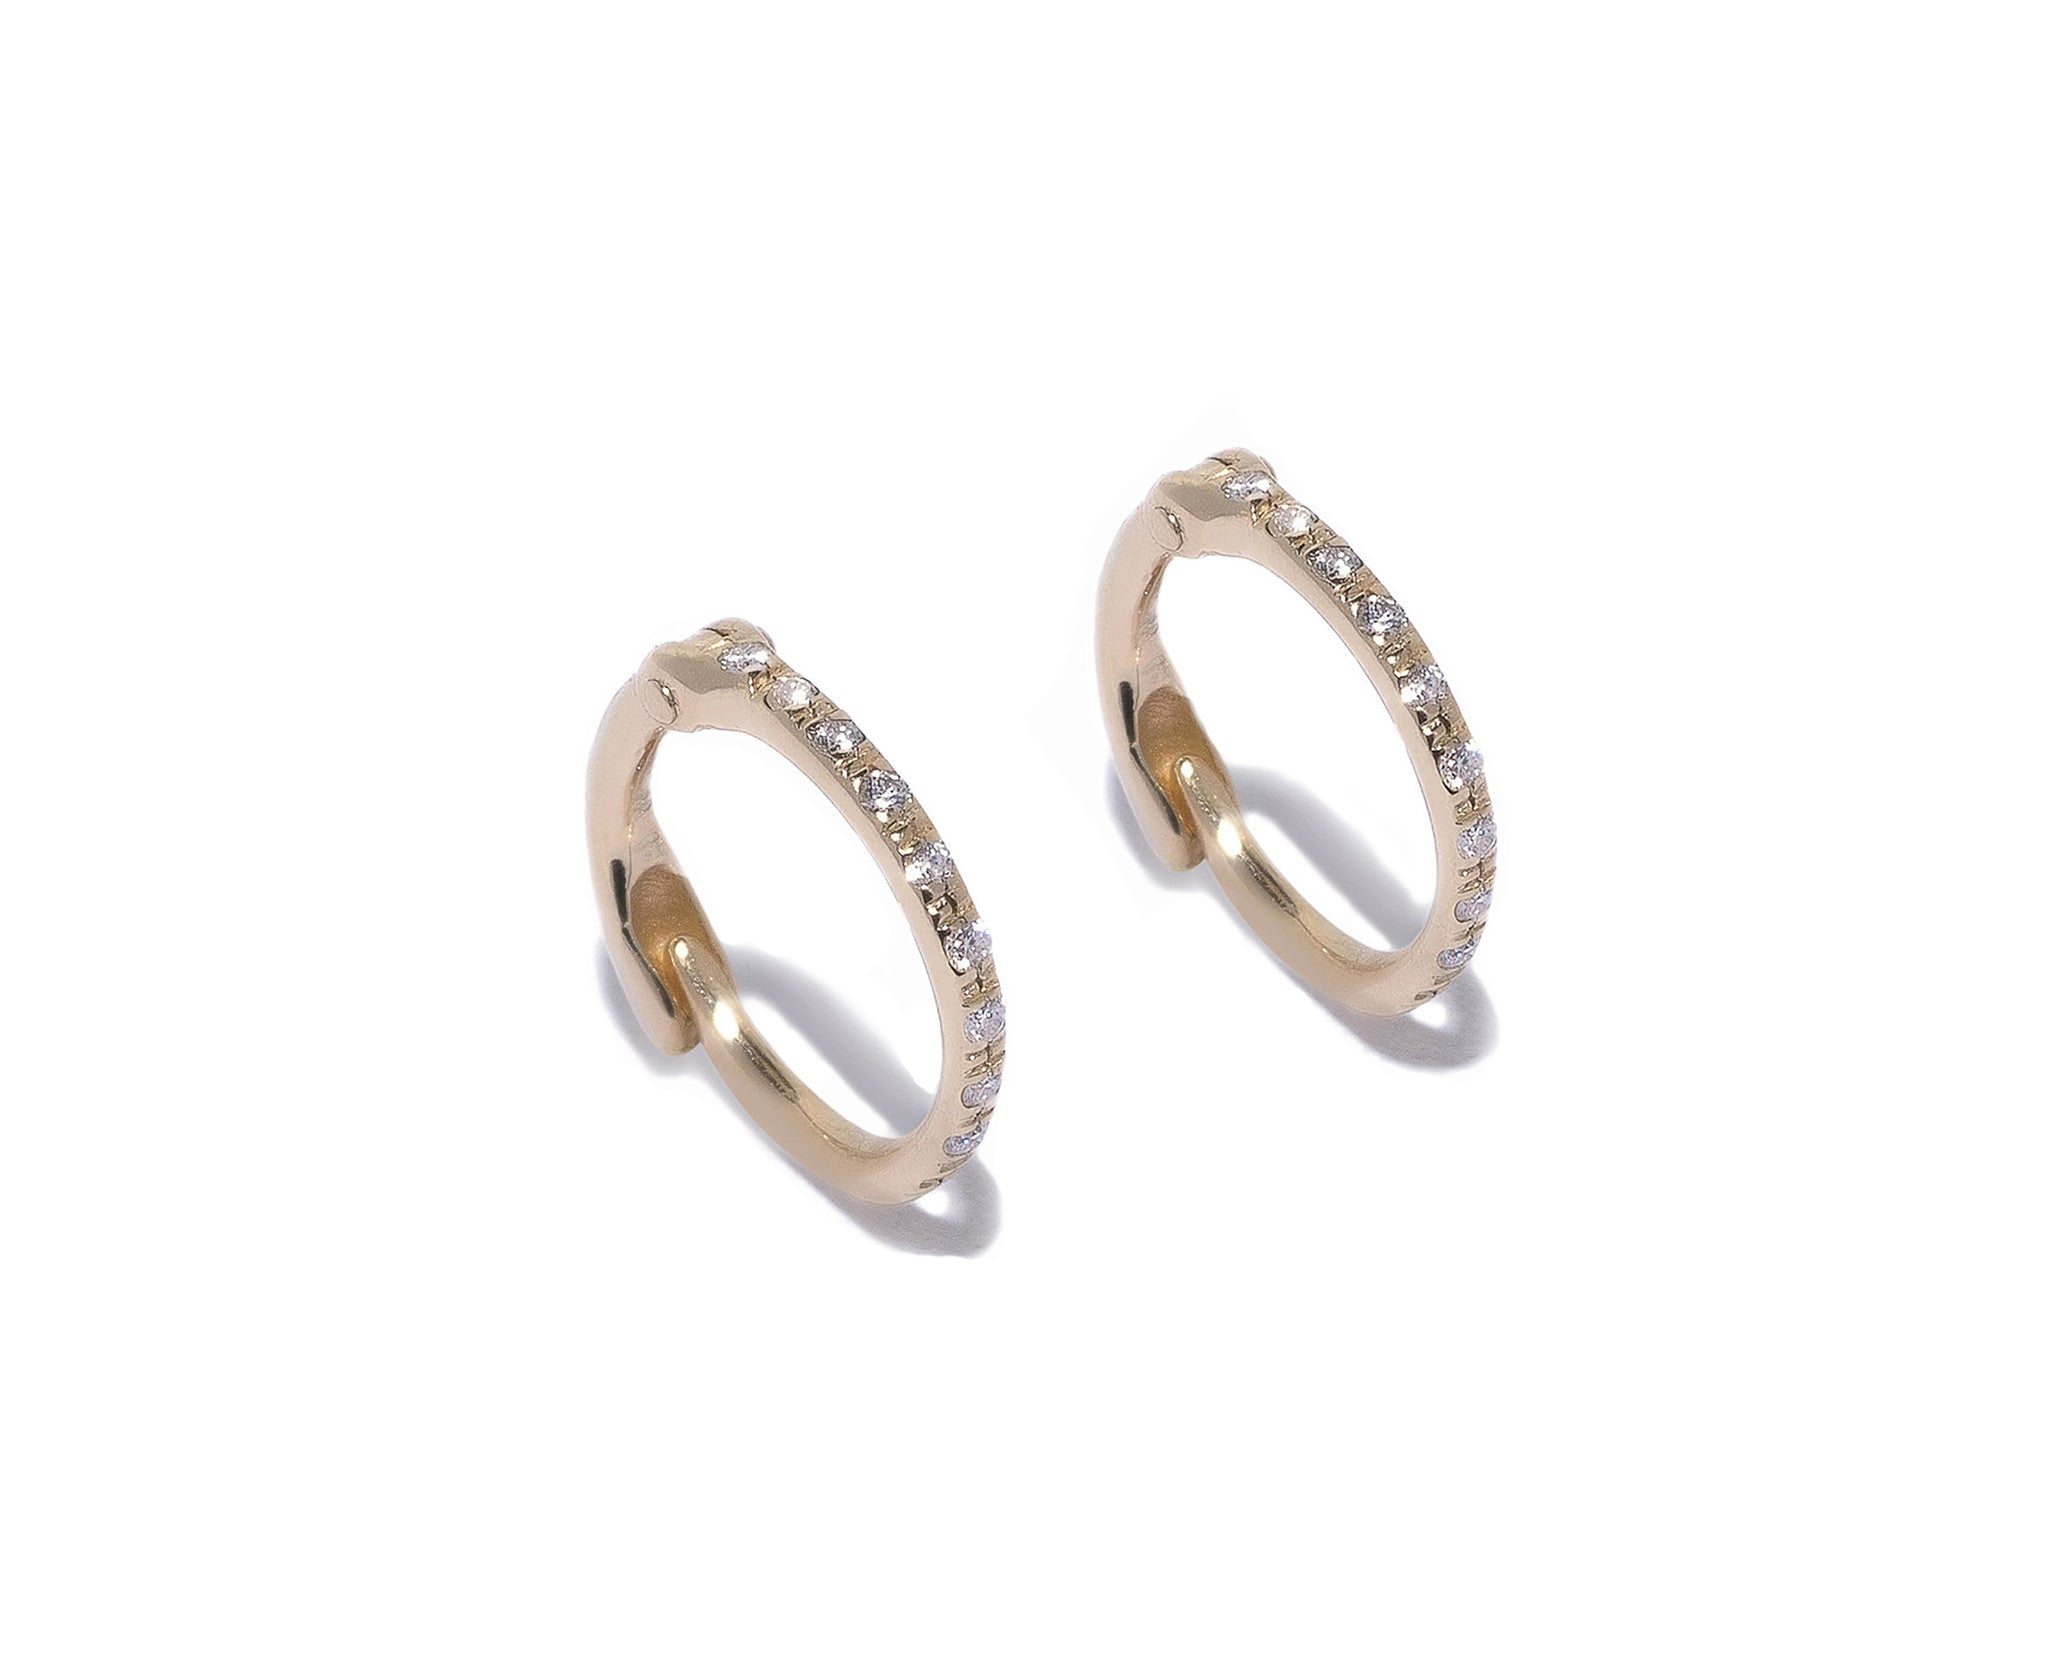 Micro Pave Diamonds Hoop Earrings Wendy Nichol Fine Jewelry Designer 14k Gold White Diamonds Black Diamonds delicate simple tiny small baby hoops